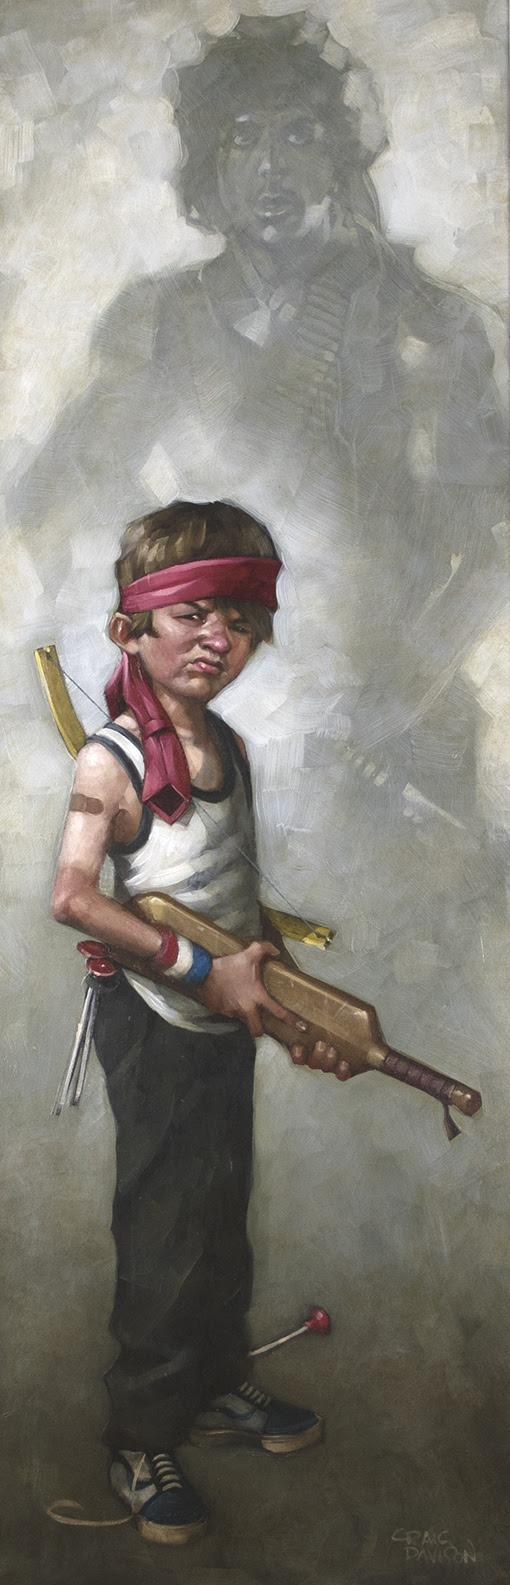 Don't Push It by Craig Davison